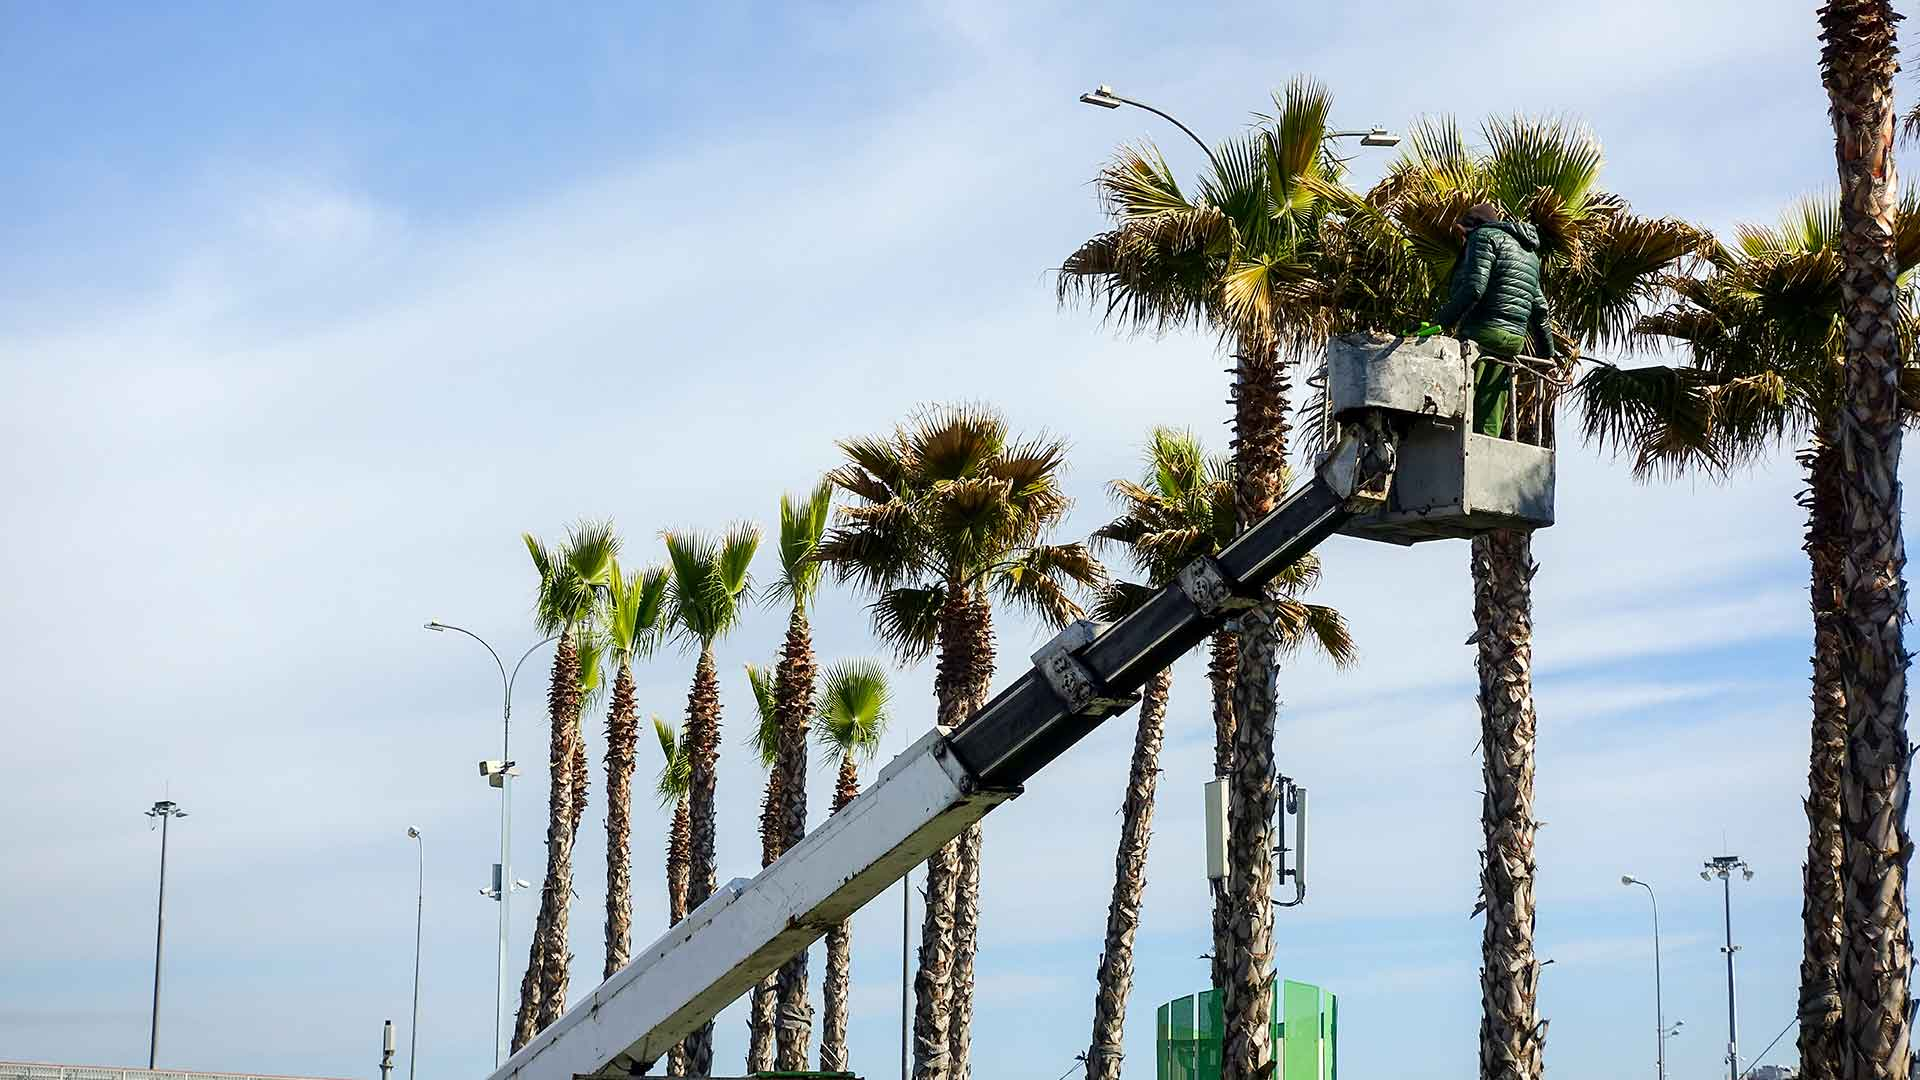 Our crew trims palm trees growing in Cape Coral, FL.